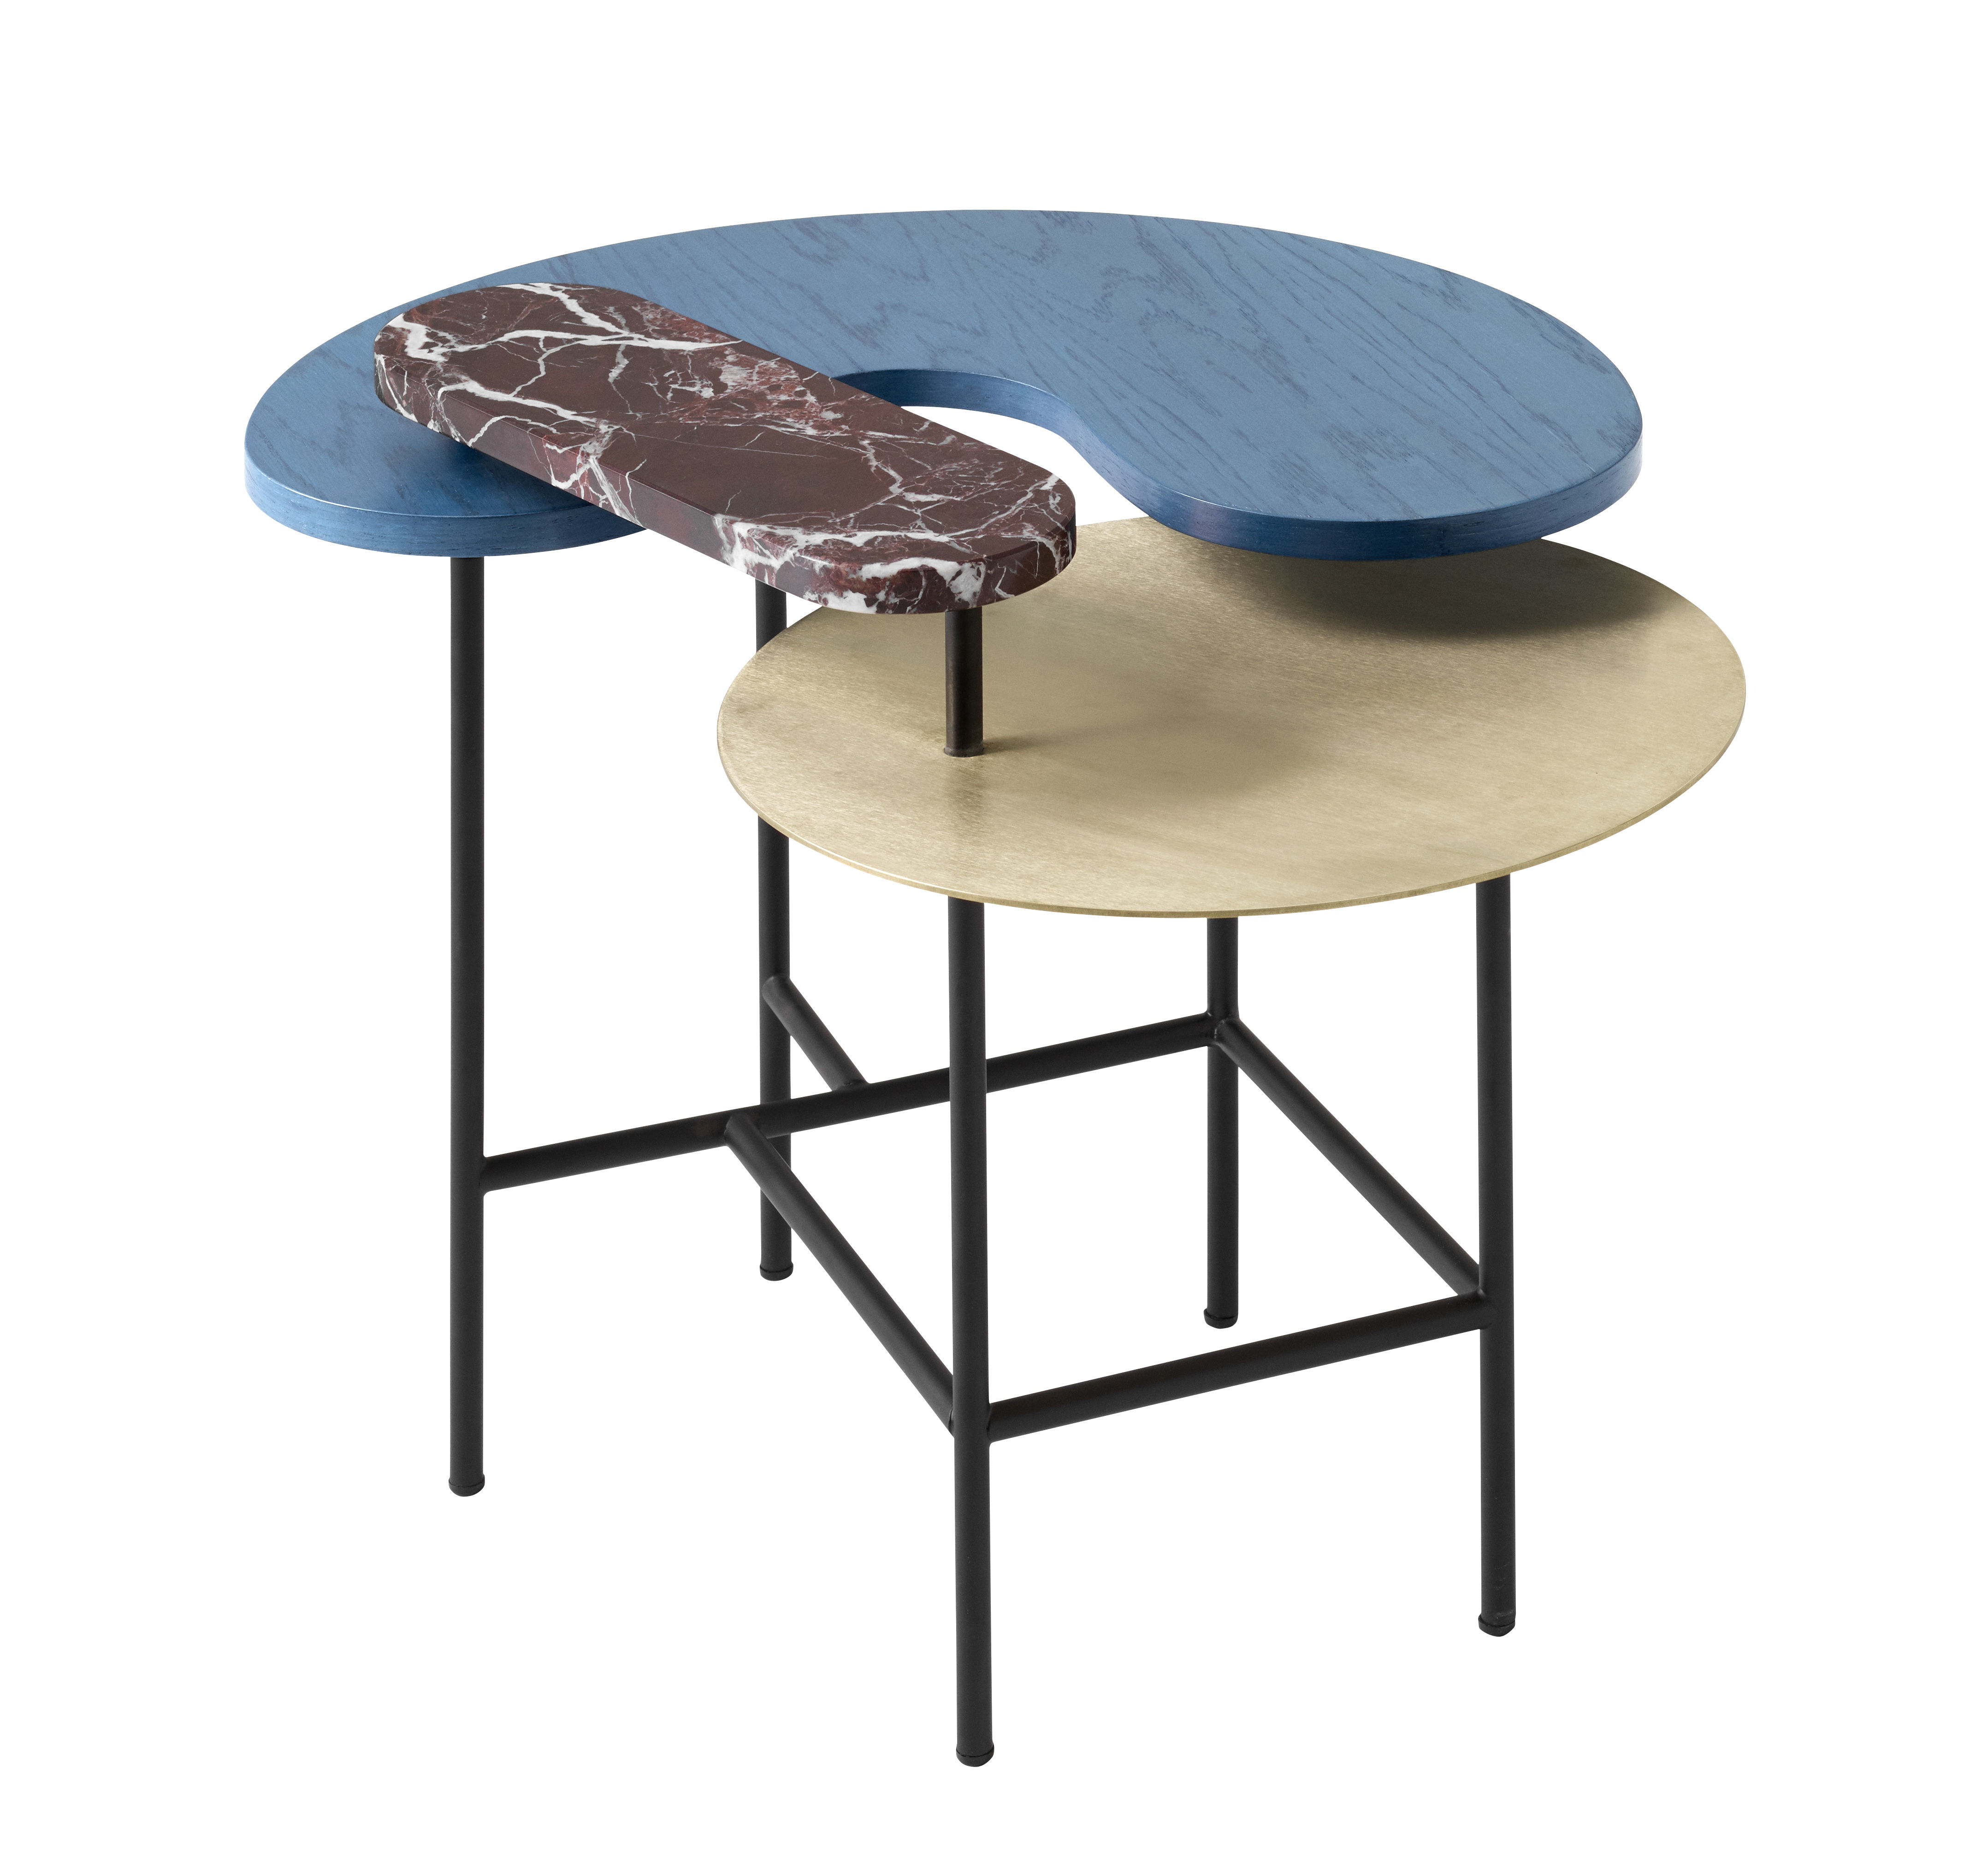 Furniture - Coffee Tables - Palette JH8 Coffee table - 3 tops by &tradition - Blue / Red and gold - Ashwood, Brass, Marble, Steel